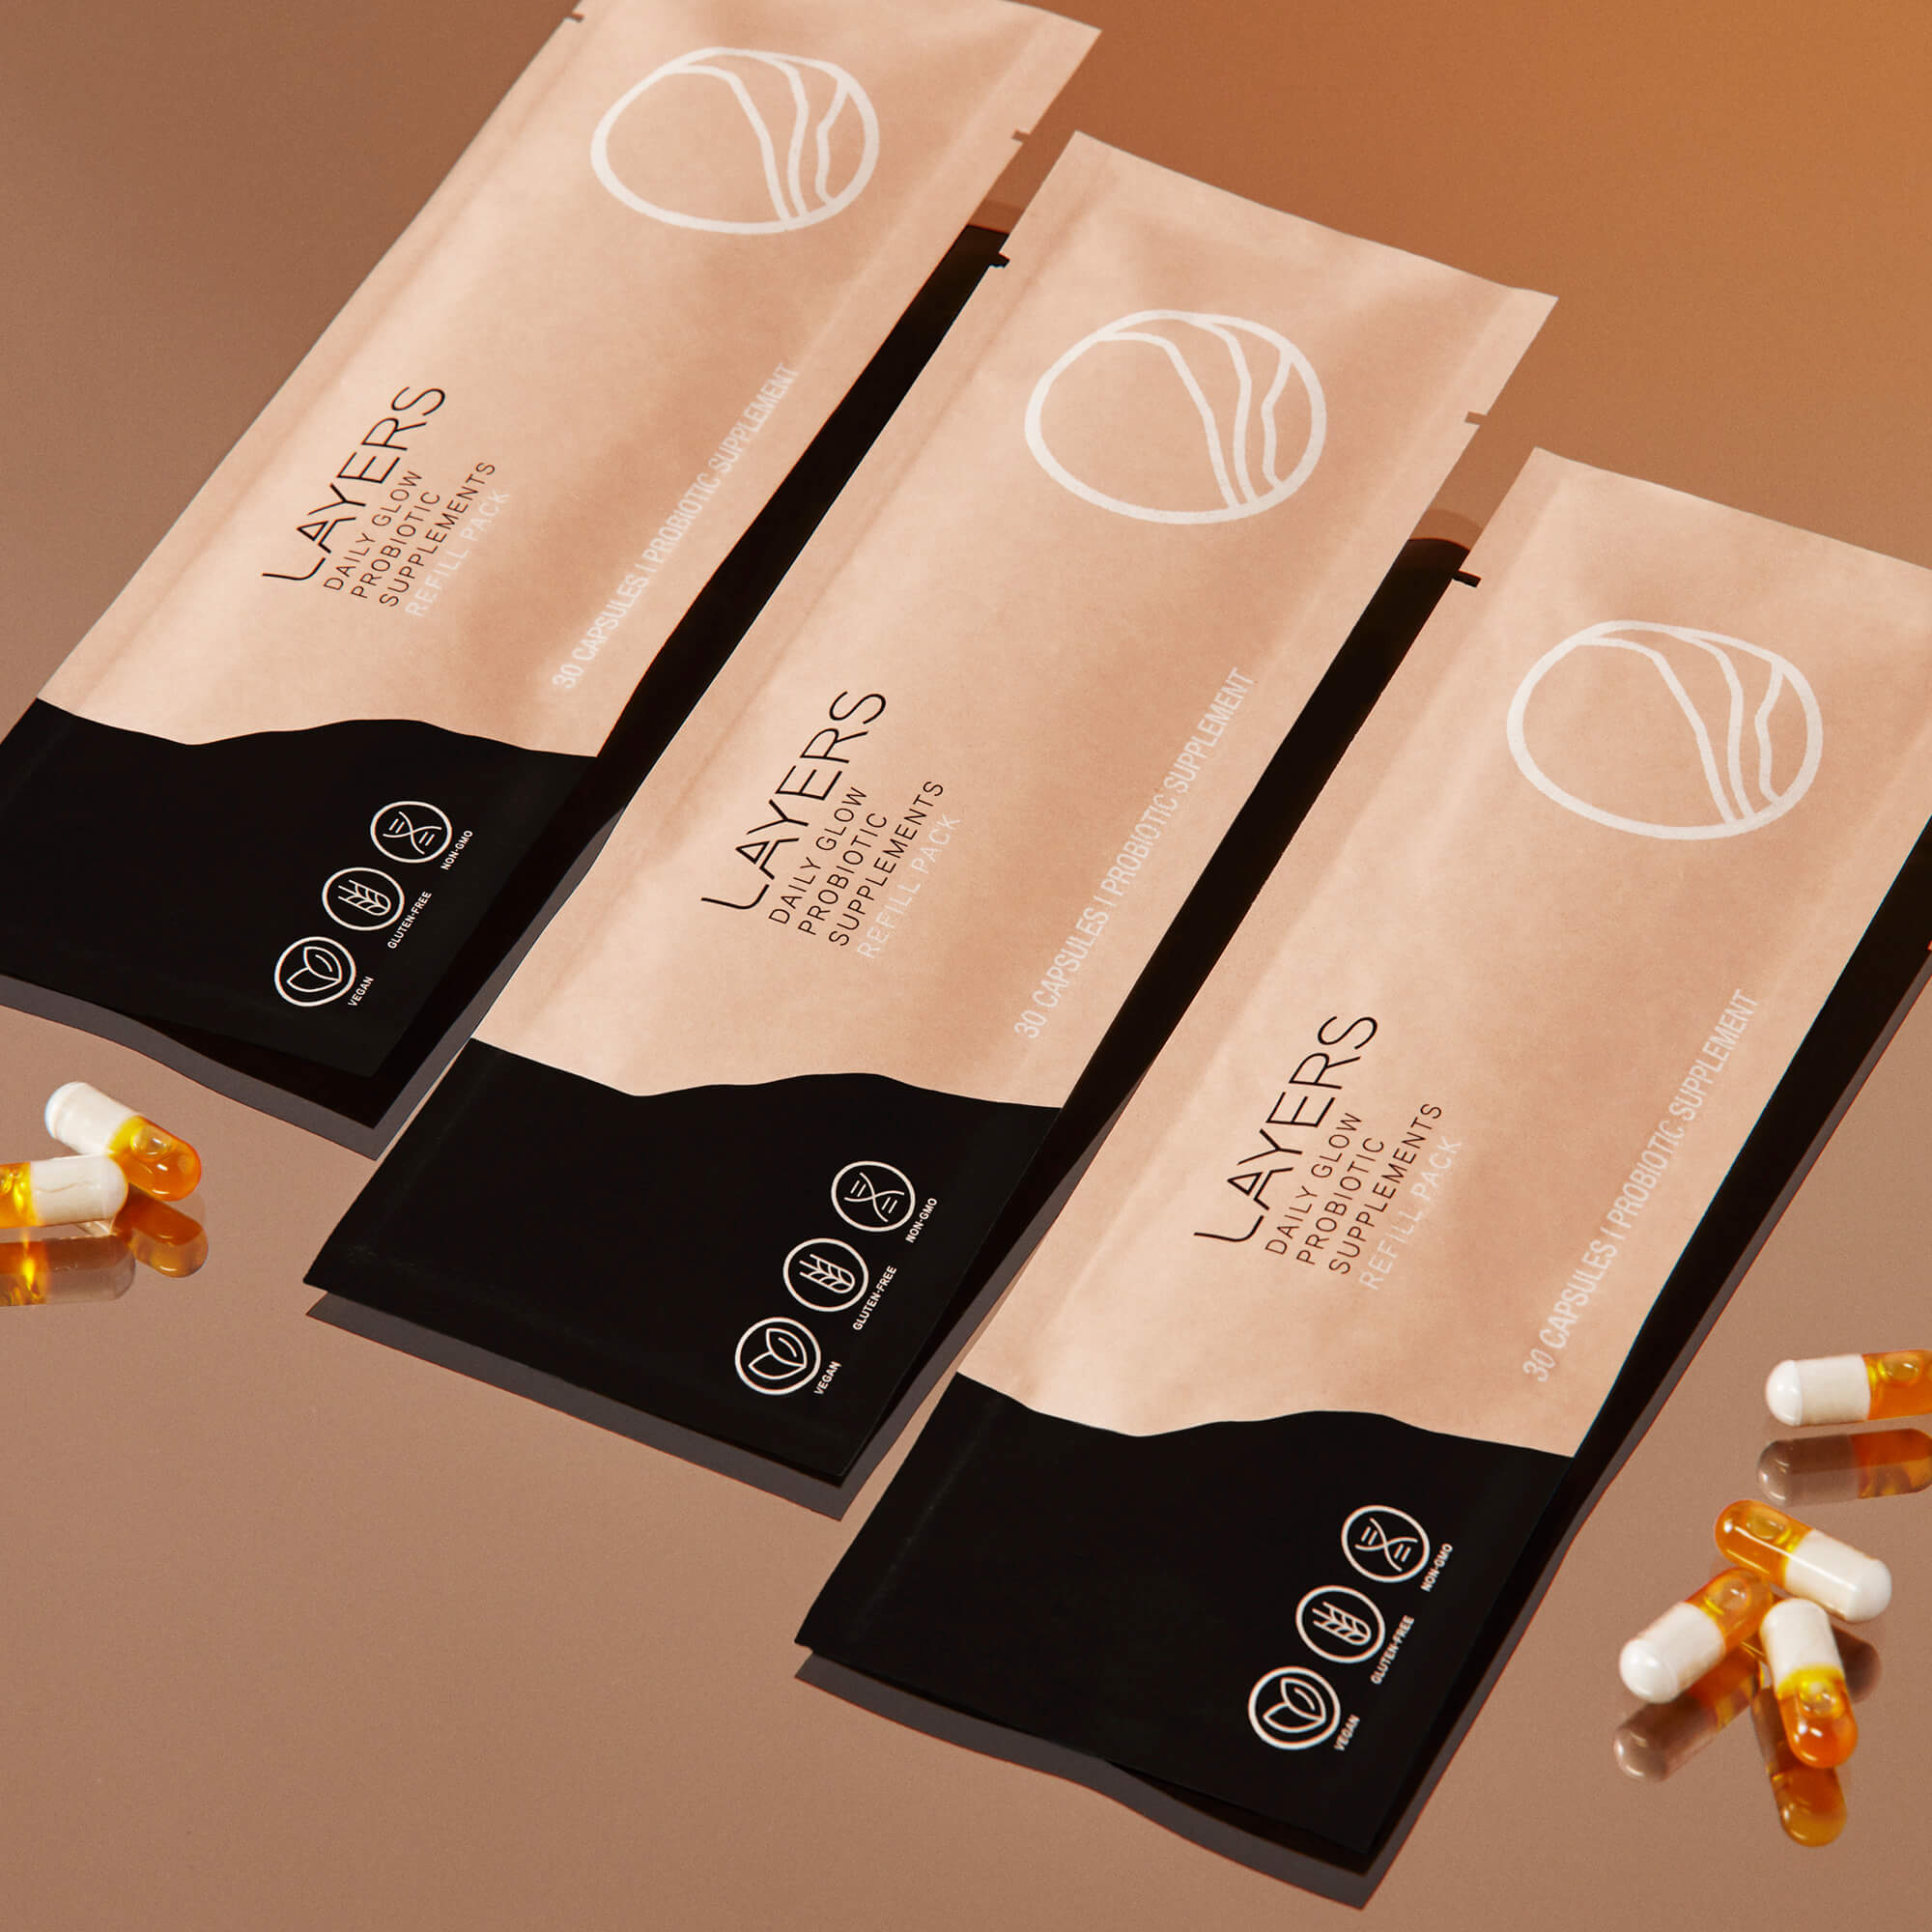 Layers Daily Glow Probiotic Supplements 100% recyclable refill pouches. 90-day supply is 3 30-capsule pouches.